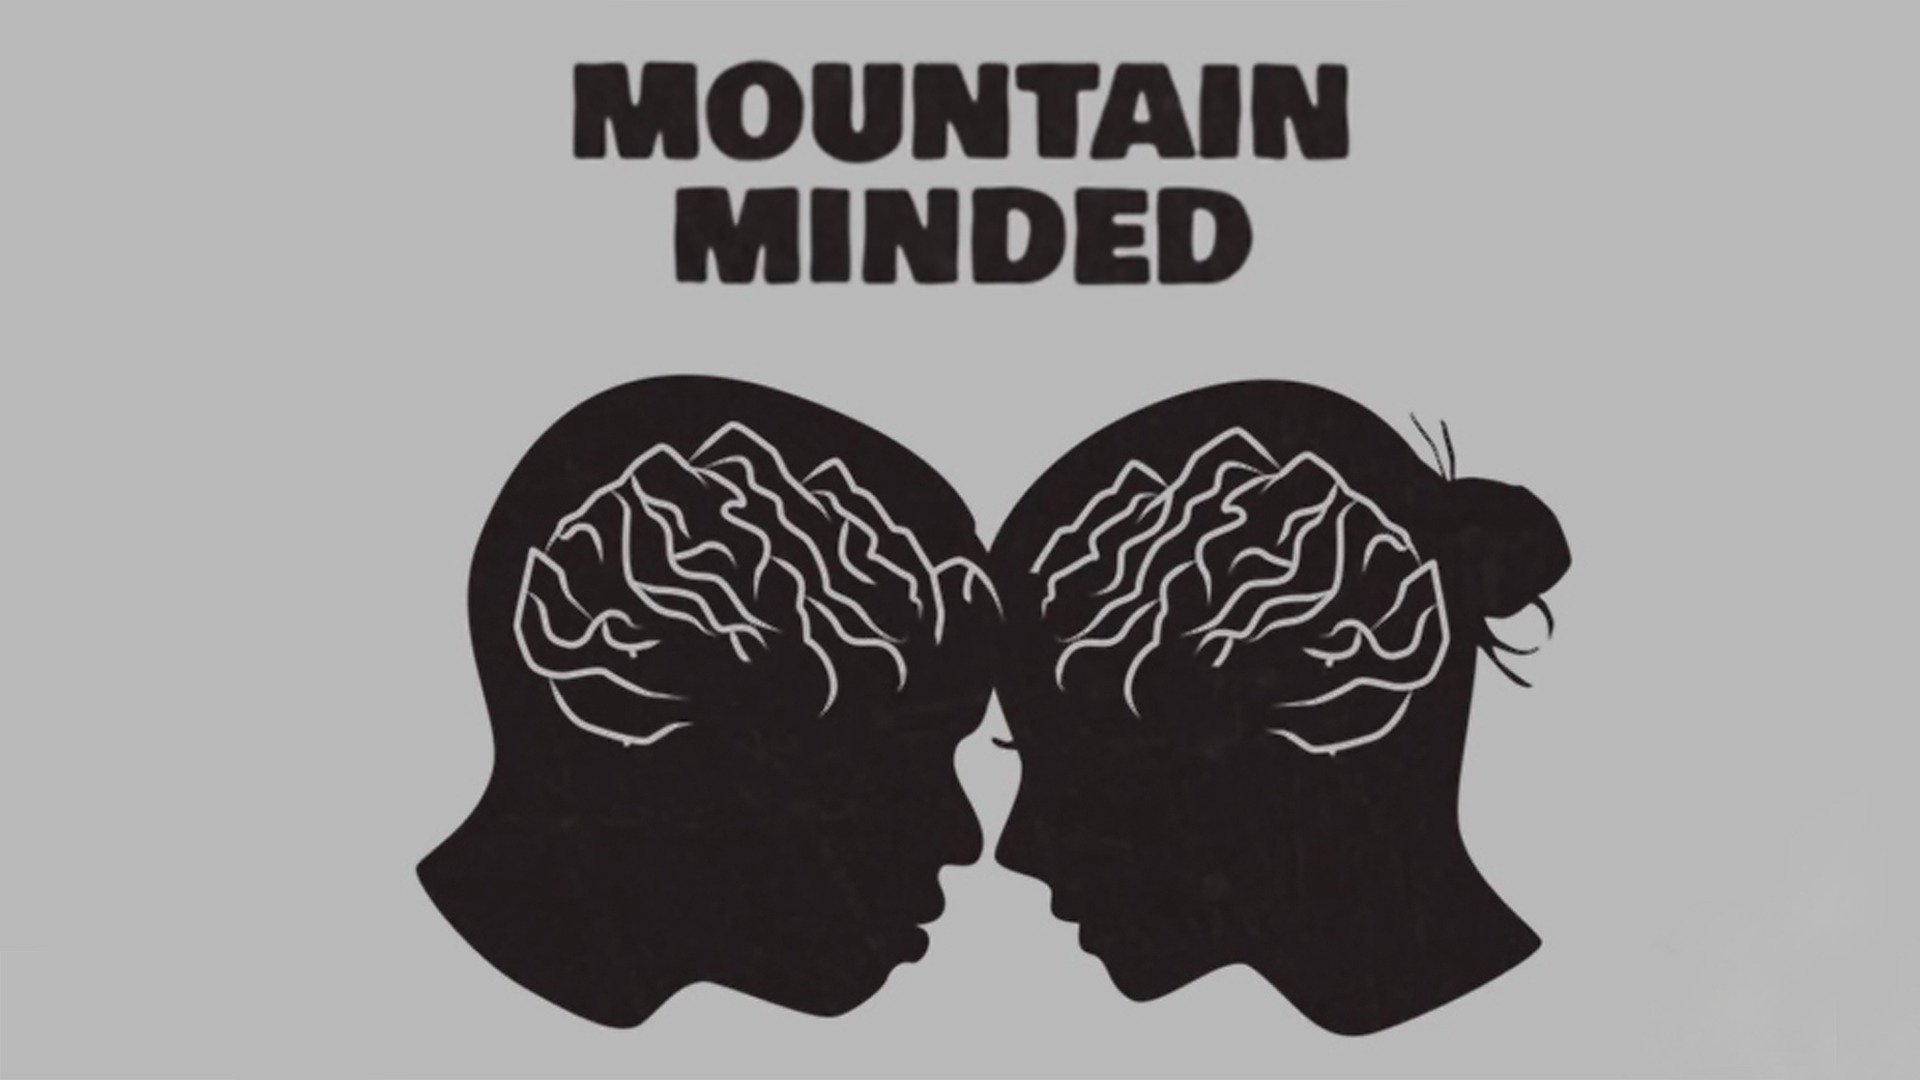 Mountain Minded